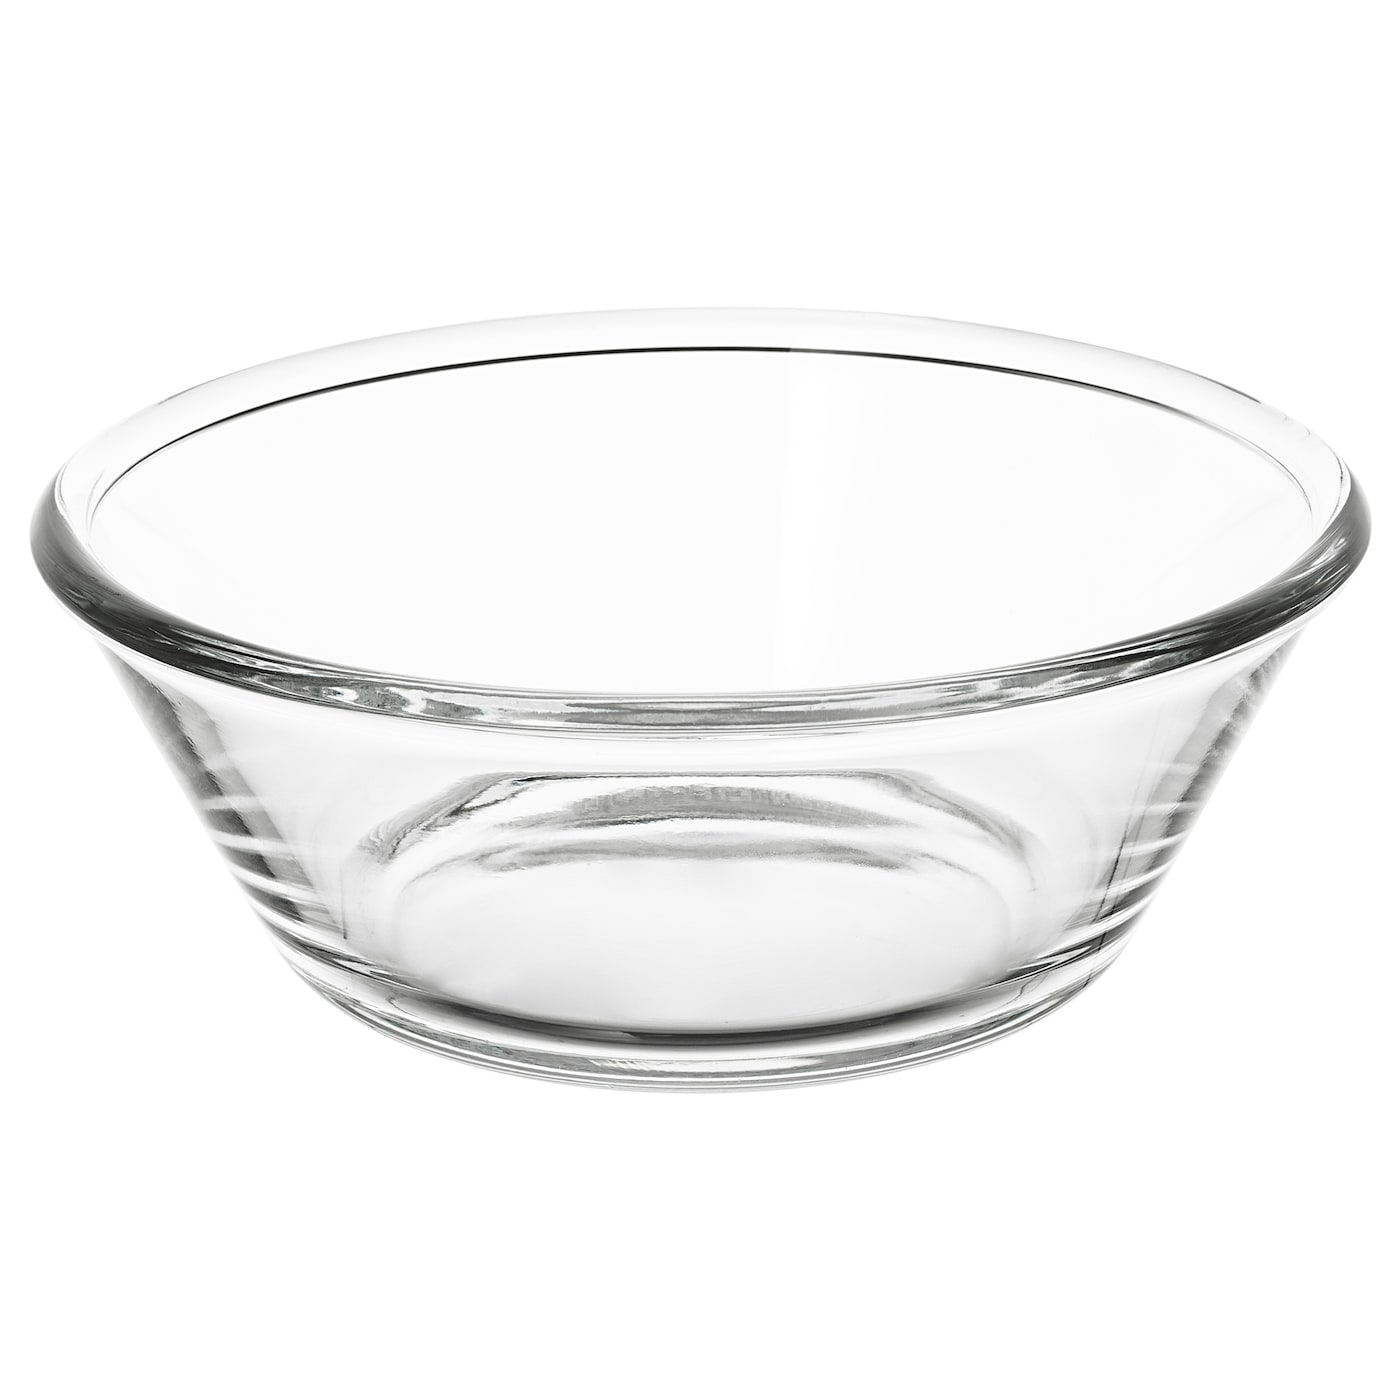 IKEA VARDAGEN serving bowl